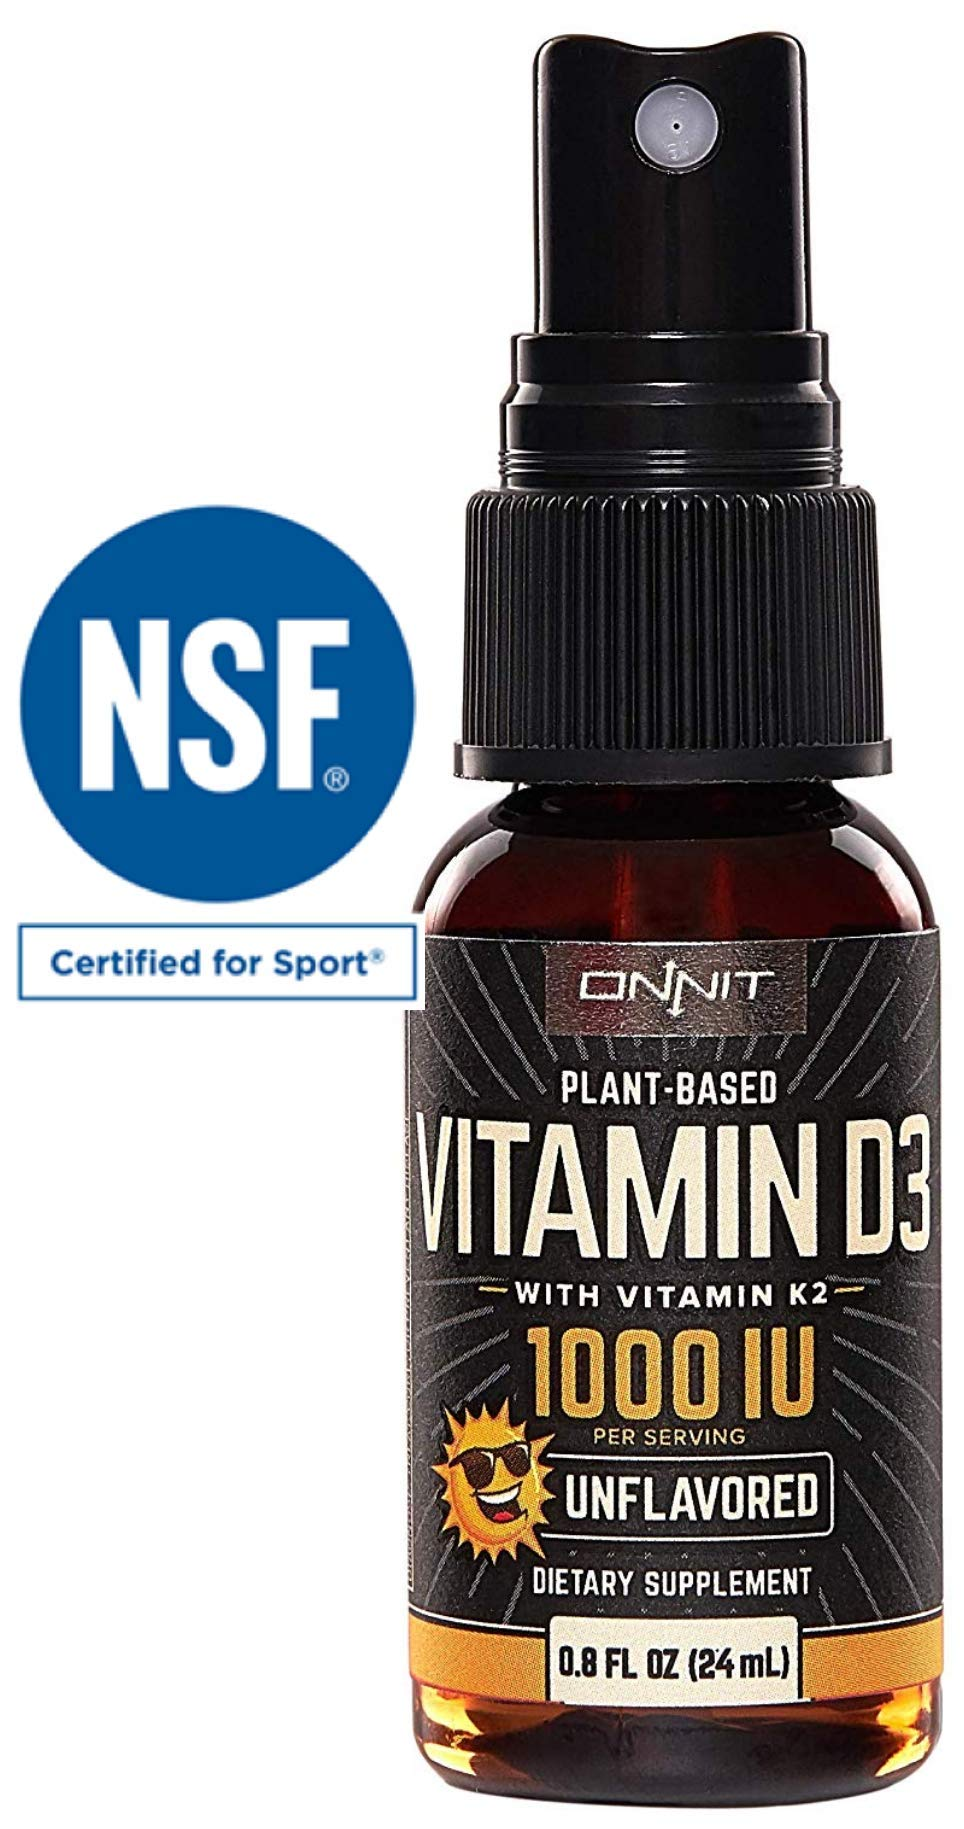 Vegan Vitamin D3 Spray with Vitamin K2 by Onnit | 1000 IU Per Serving | Unflavored | 24ml Per Bottle